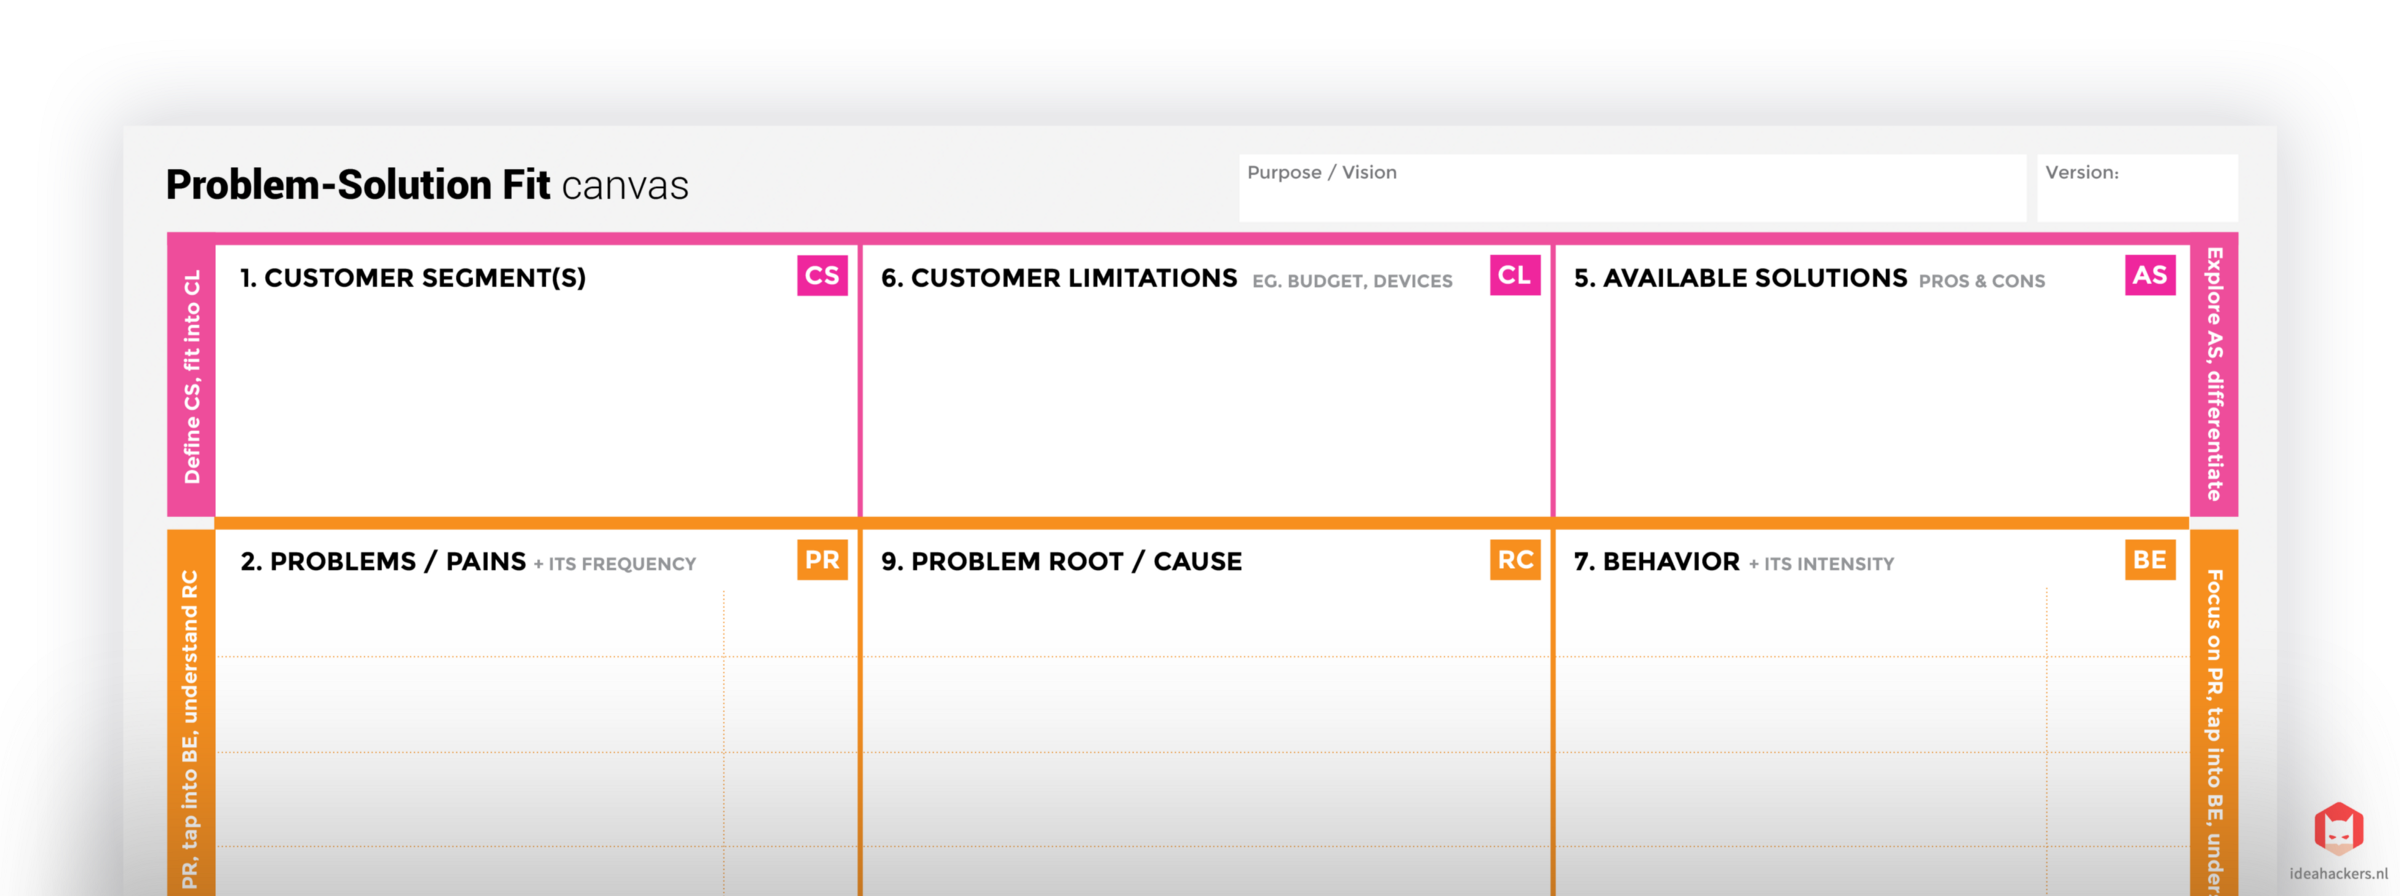 The Problem Solution Fit Canvas Is Based On Principles Of Lean Startup LUM Lazy User Model And Experience Design